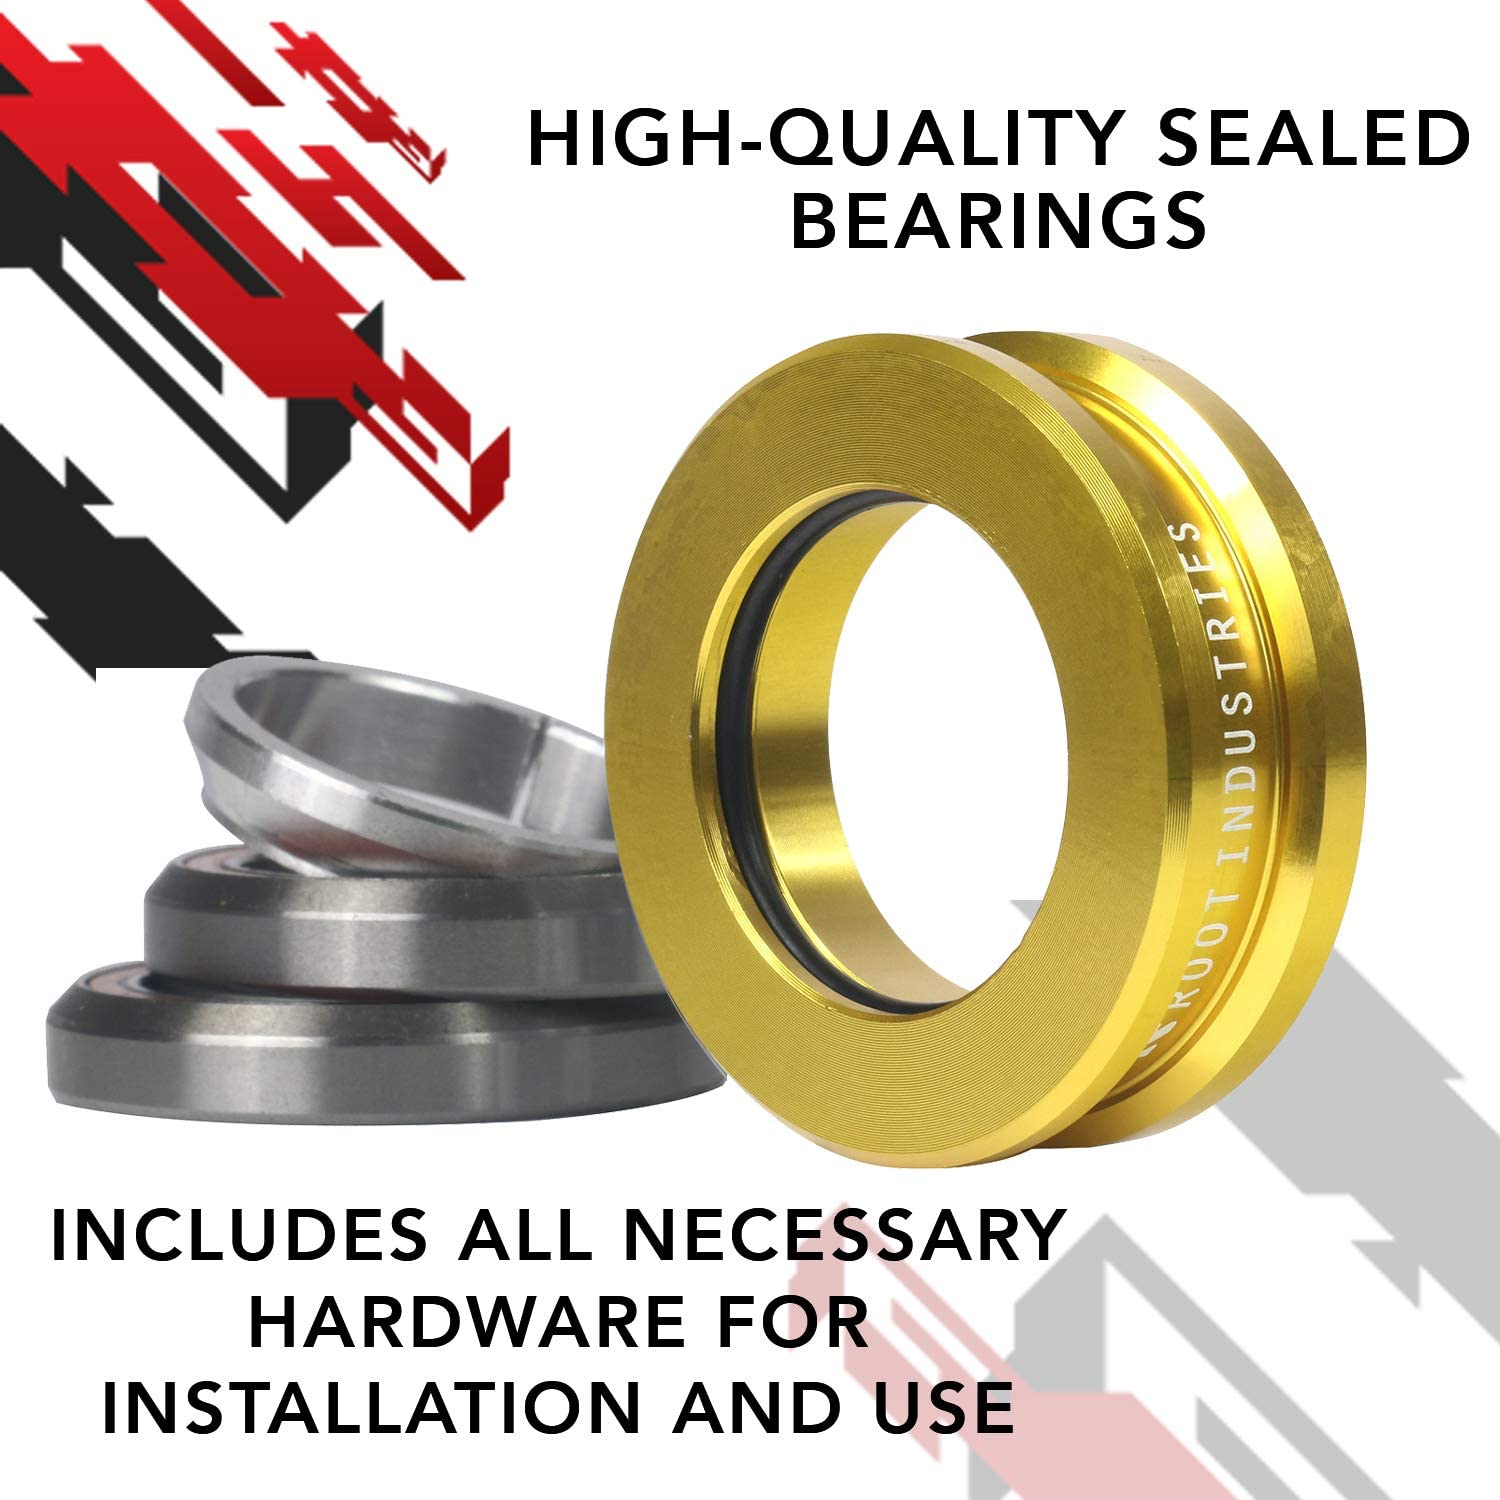 Universal Compatibility Quality Smooth Fast Sealed Bearings Pro Trick Stunt Headset Premium Color Option 1-⅛ Freestyle BMX Kick Push Scooter Integrated Headset AIR Tall Stack Headset